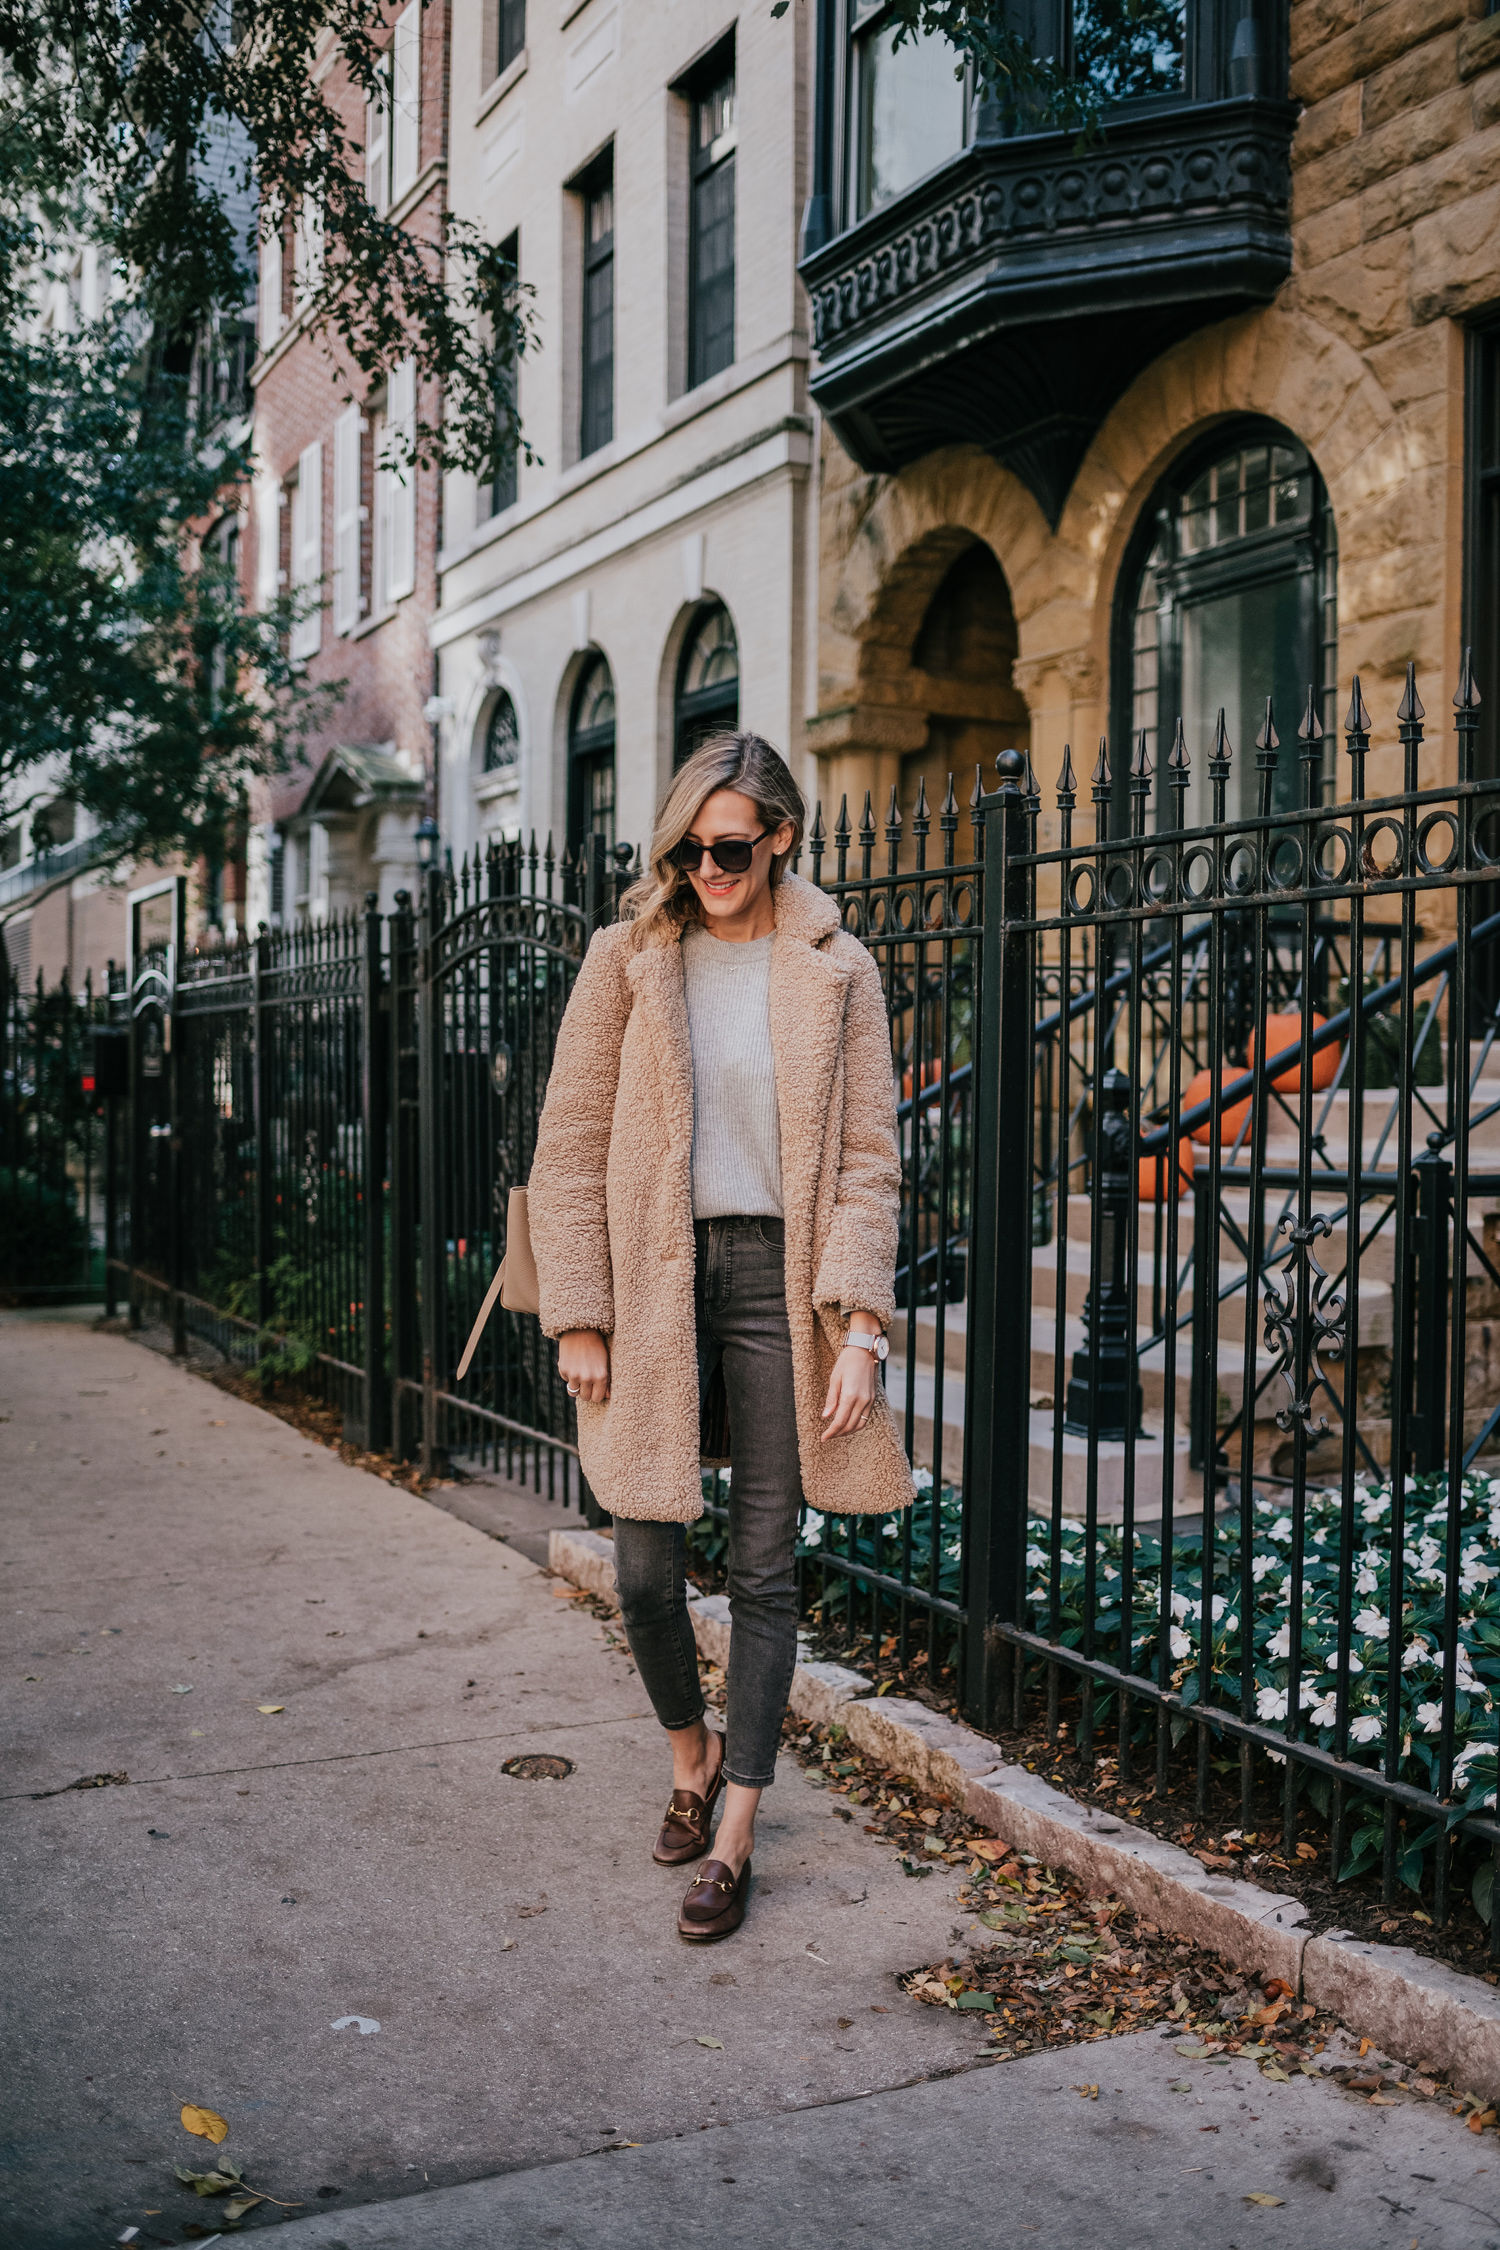 teddy coat with jeans